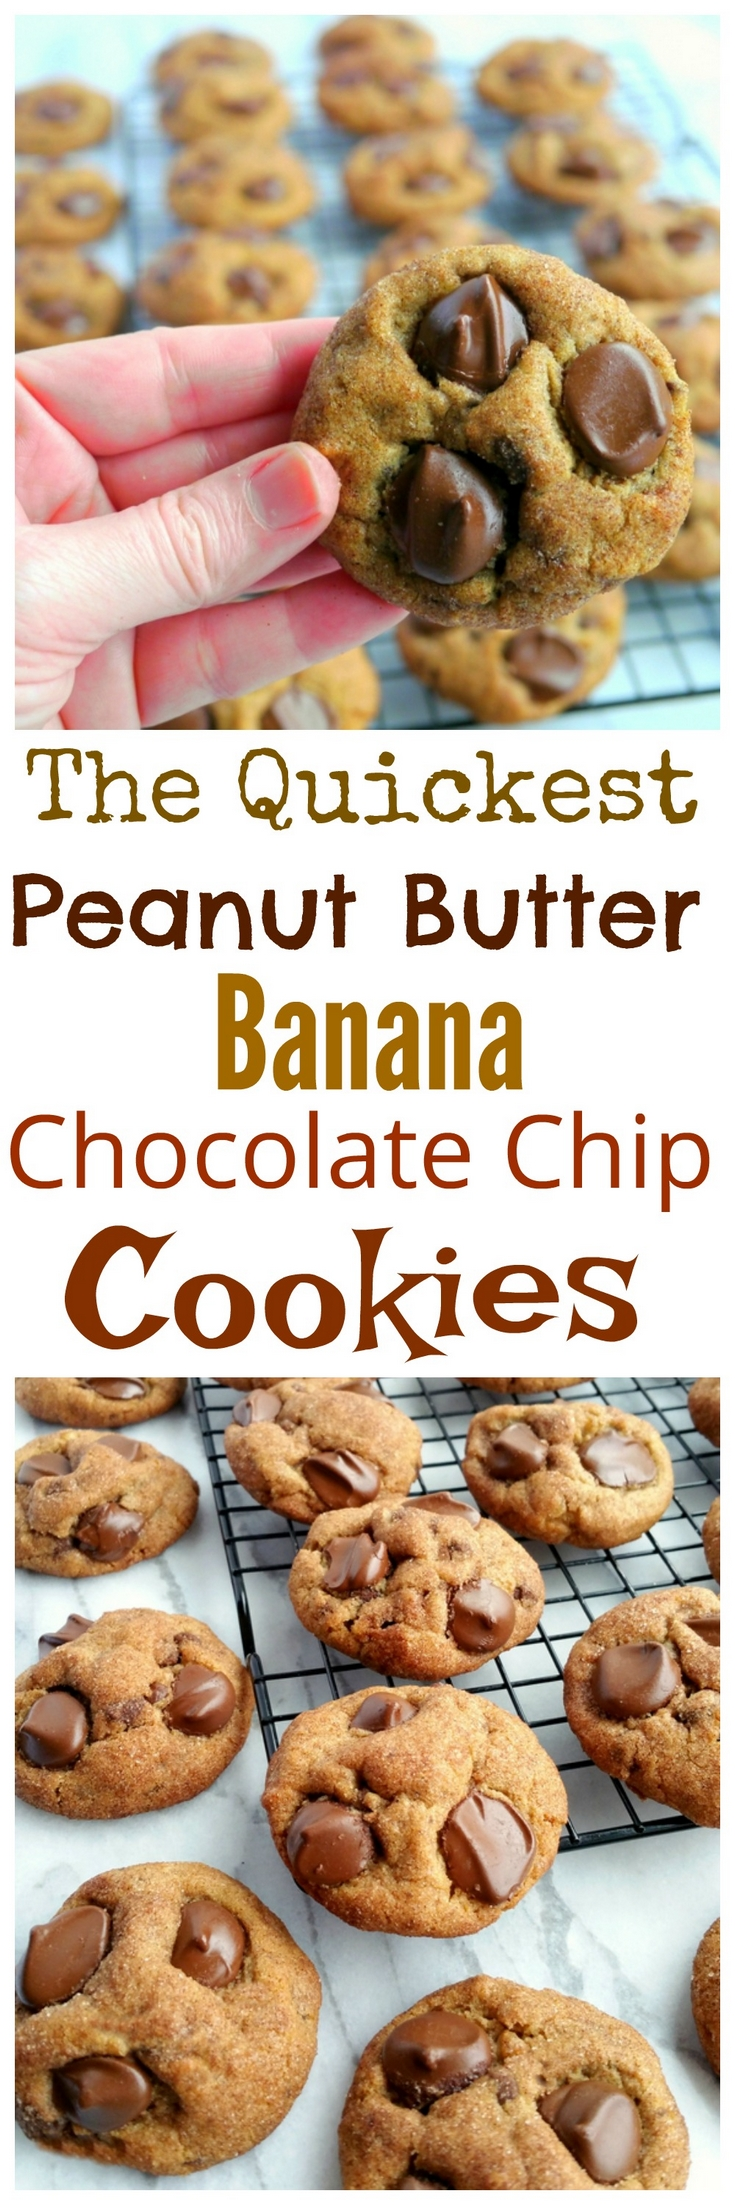 Just when you thought you needed to spend all day making cookies, it turns out you don't! These Quickest Peanut Butter-Banana-Chocolate Chip Cookies are everyone's favorite and they take only minutes to put together. via @cmpollak1